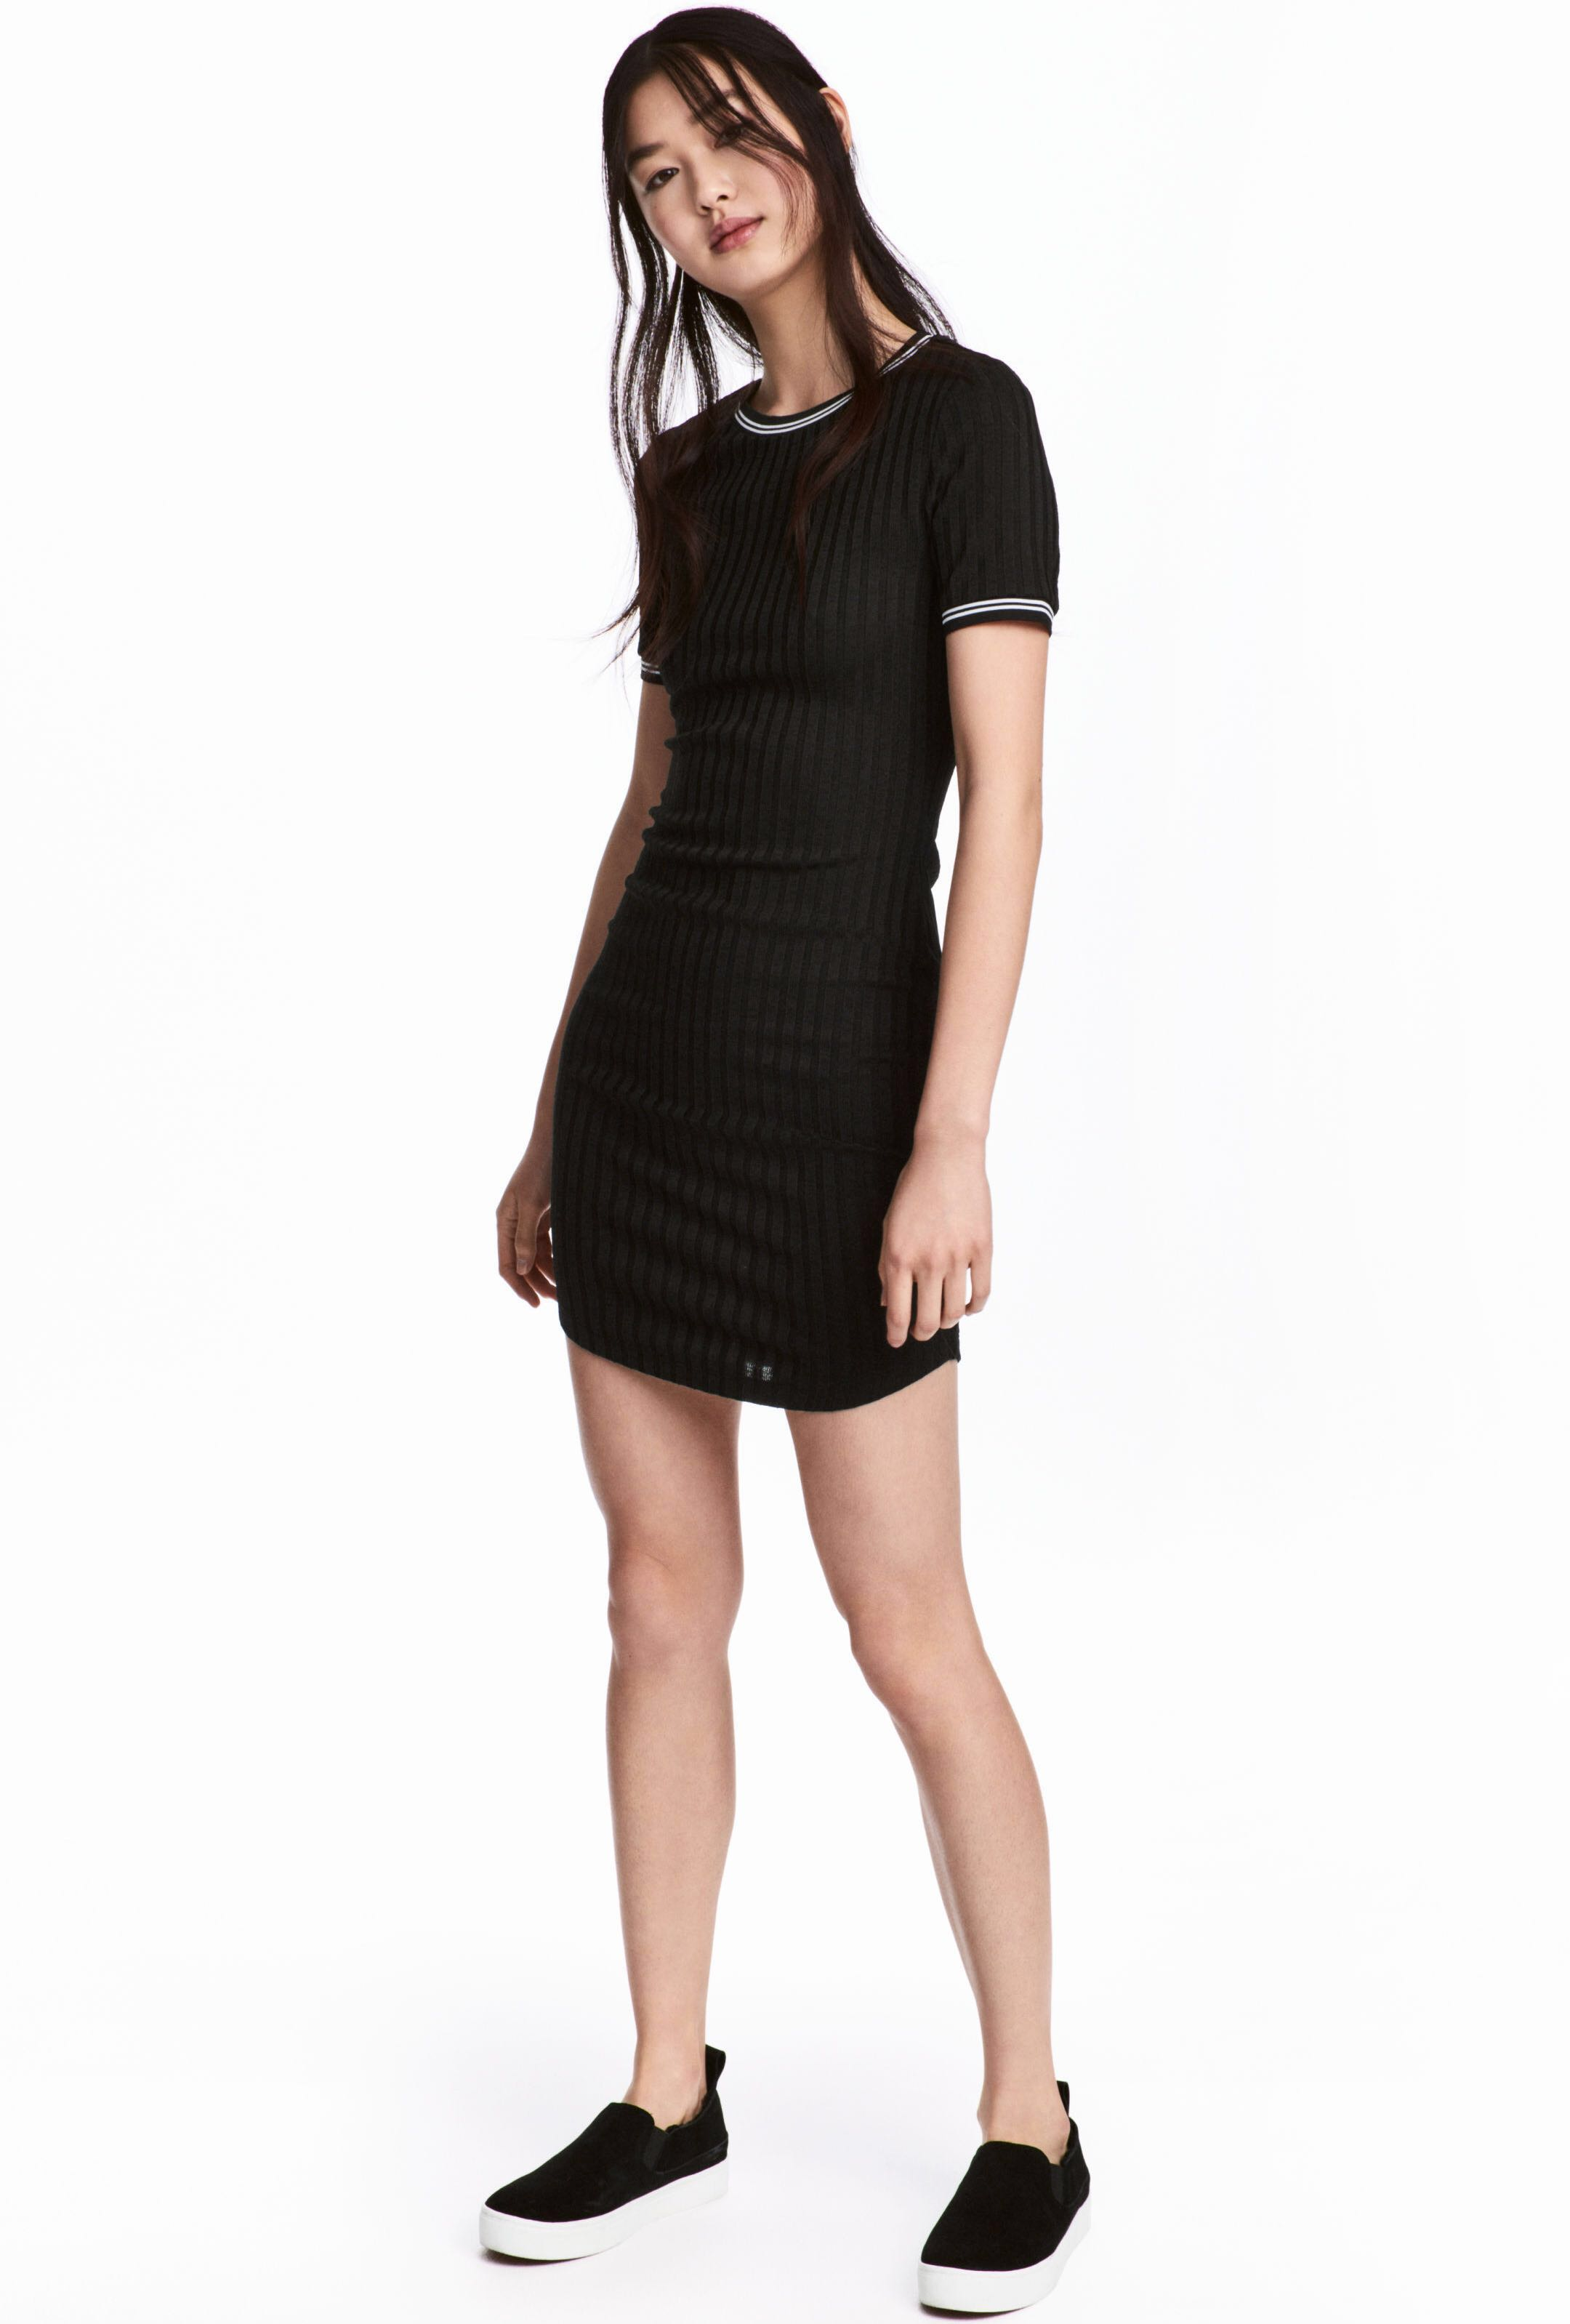 640e11bf4b0 H M Black Ribbed Dress